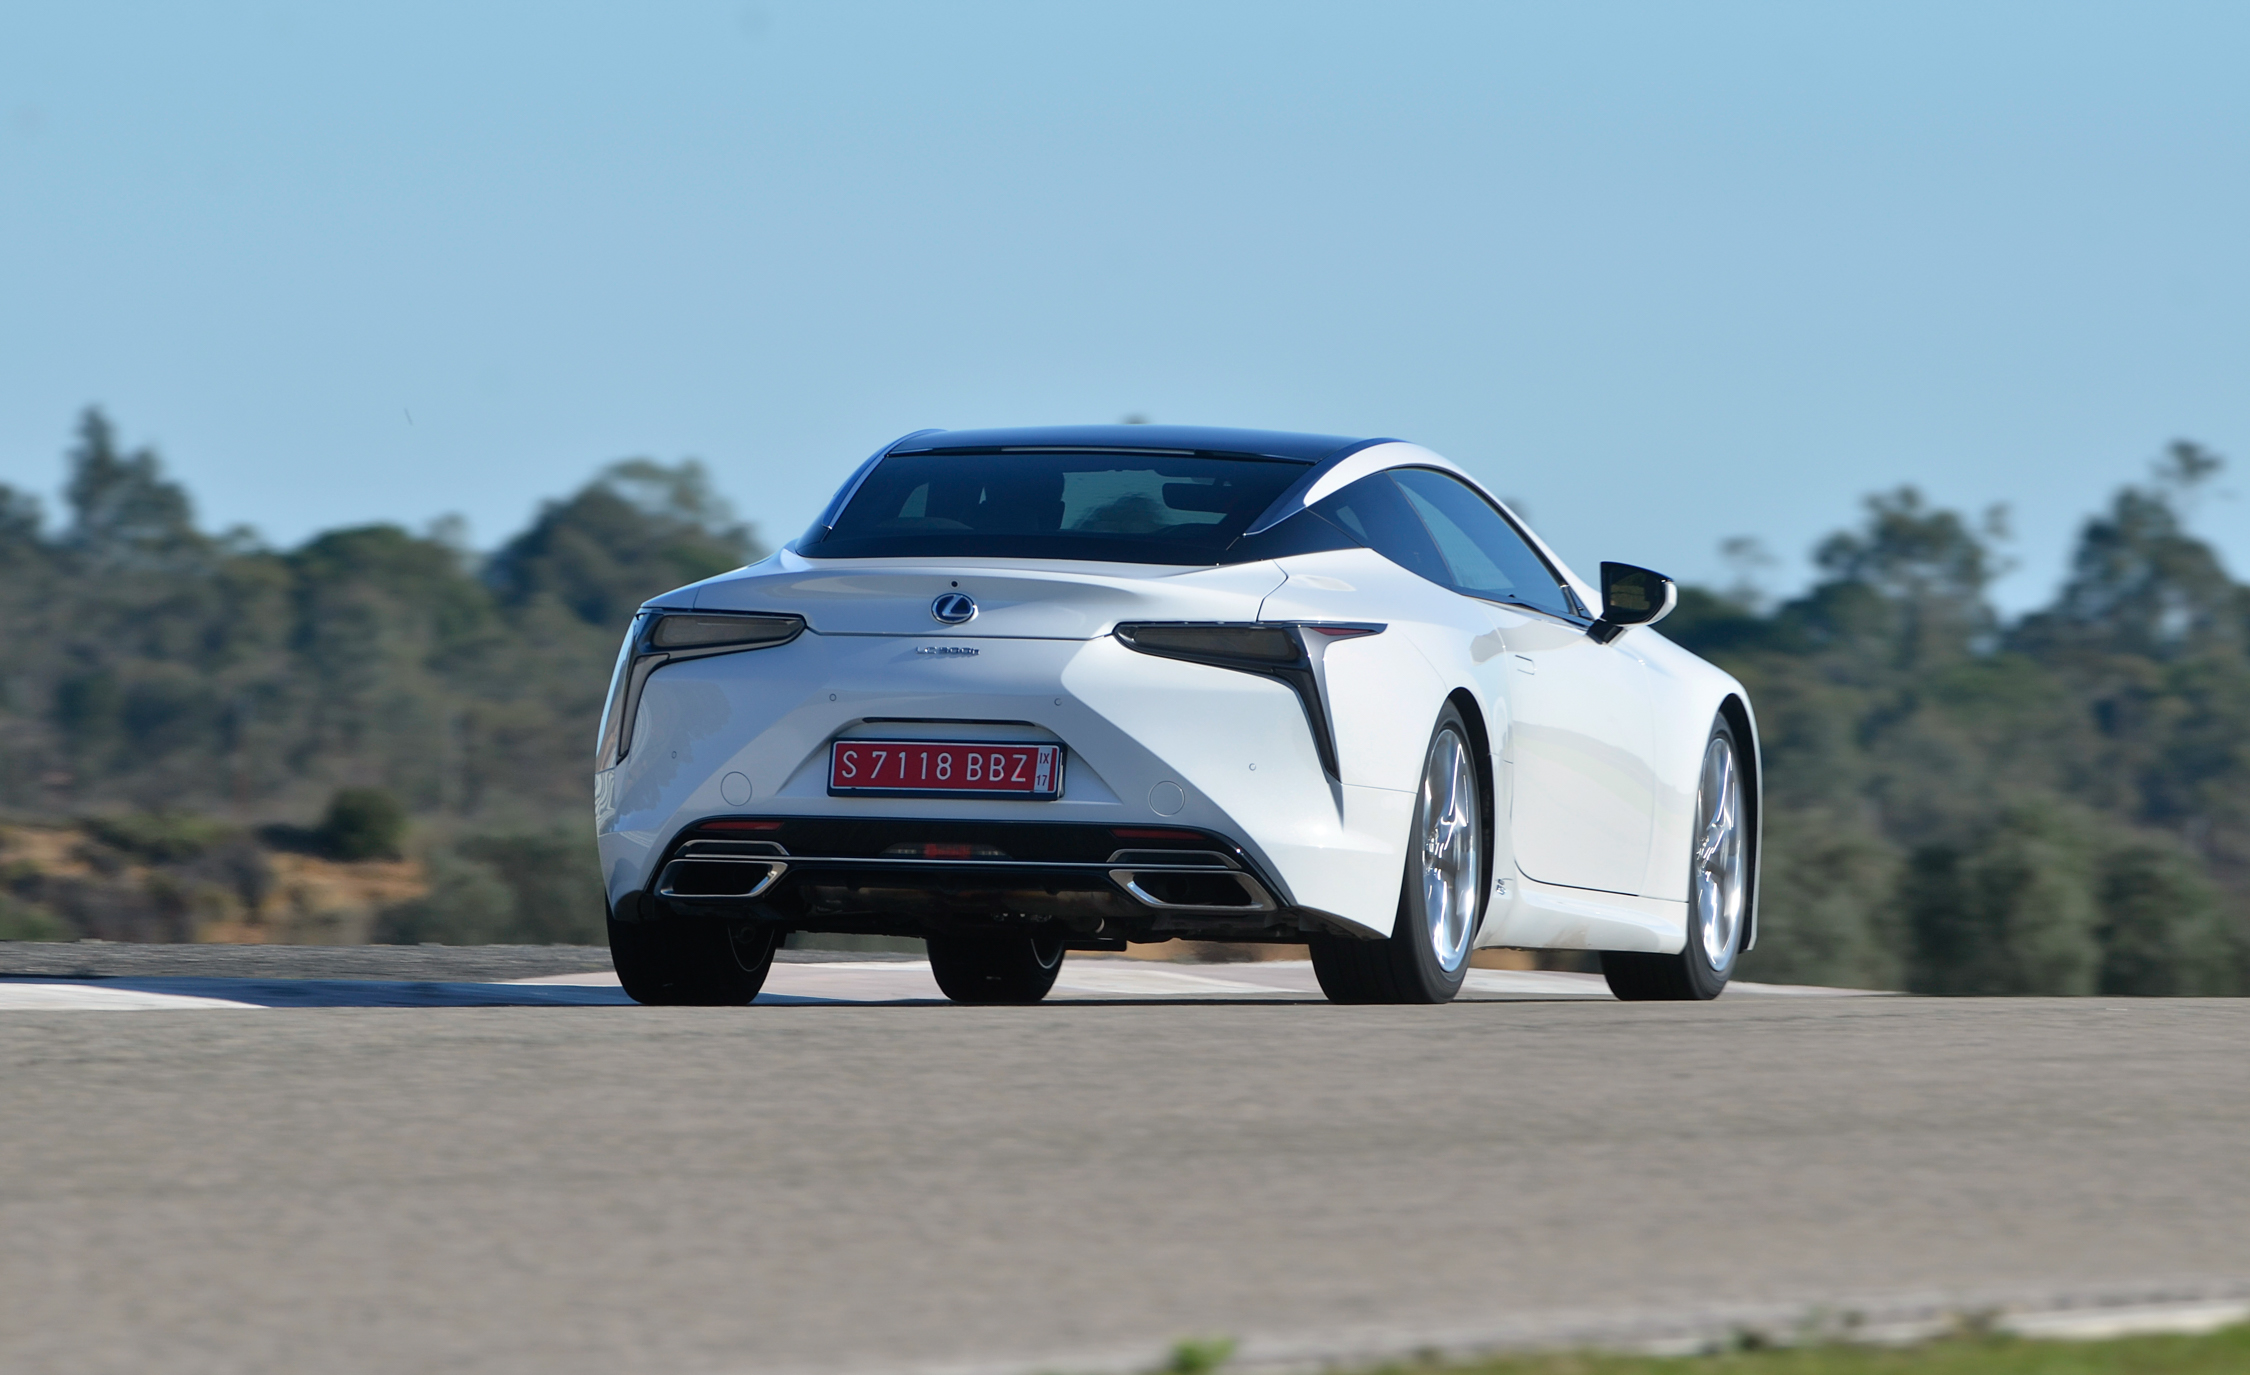 2018 Lexus Lc 500h White Test Drive Rear And Side View (View 31 of 84)